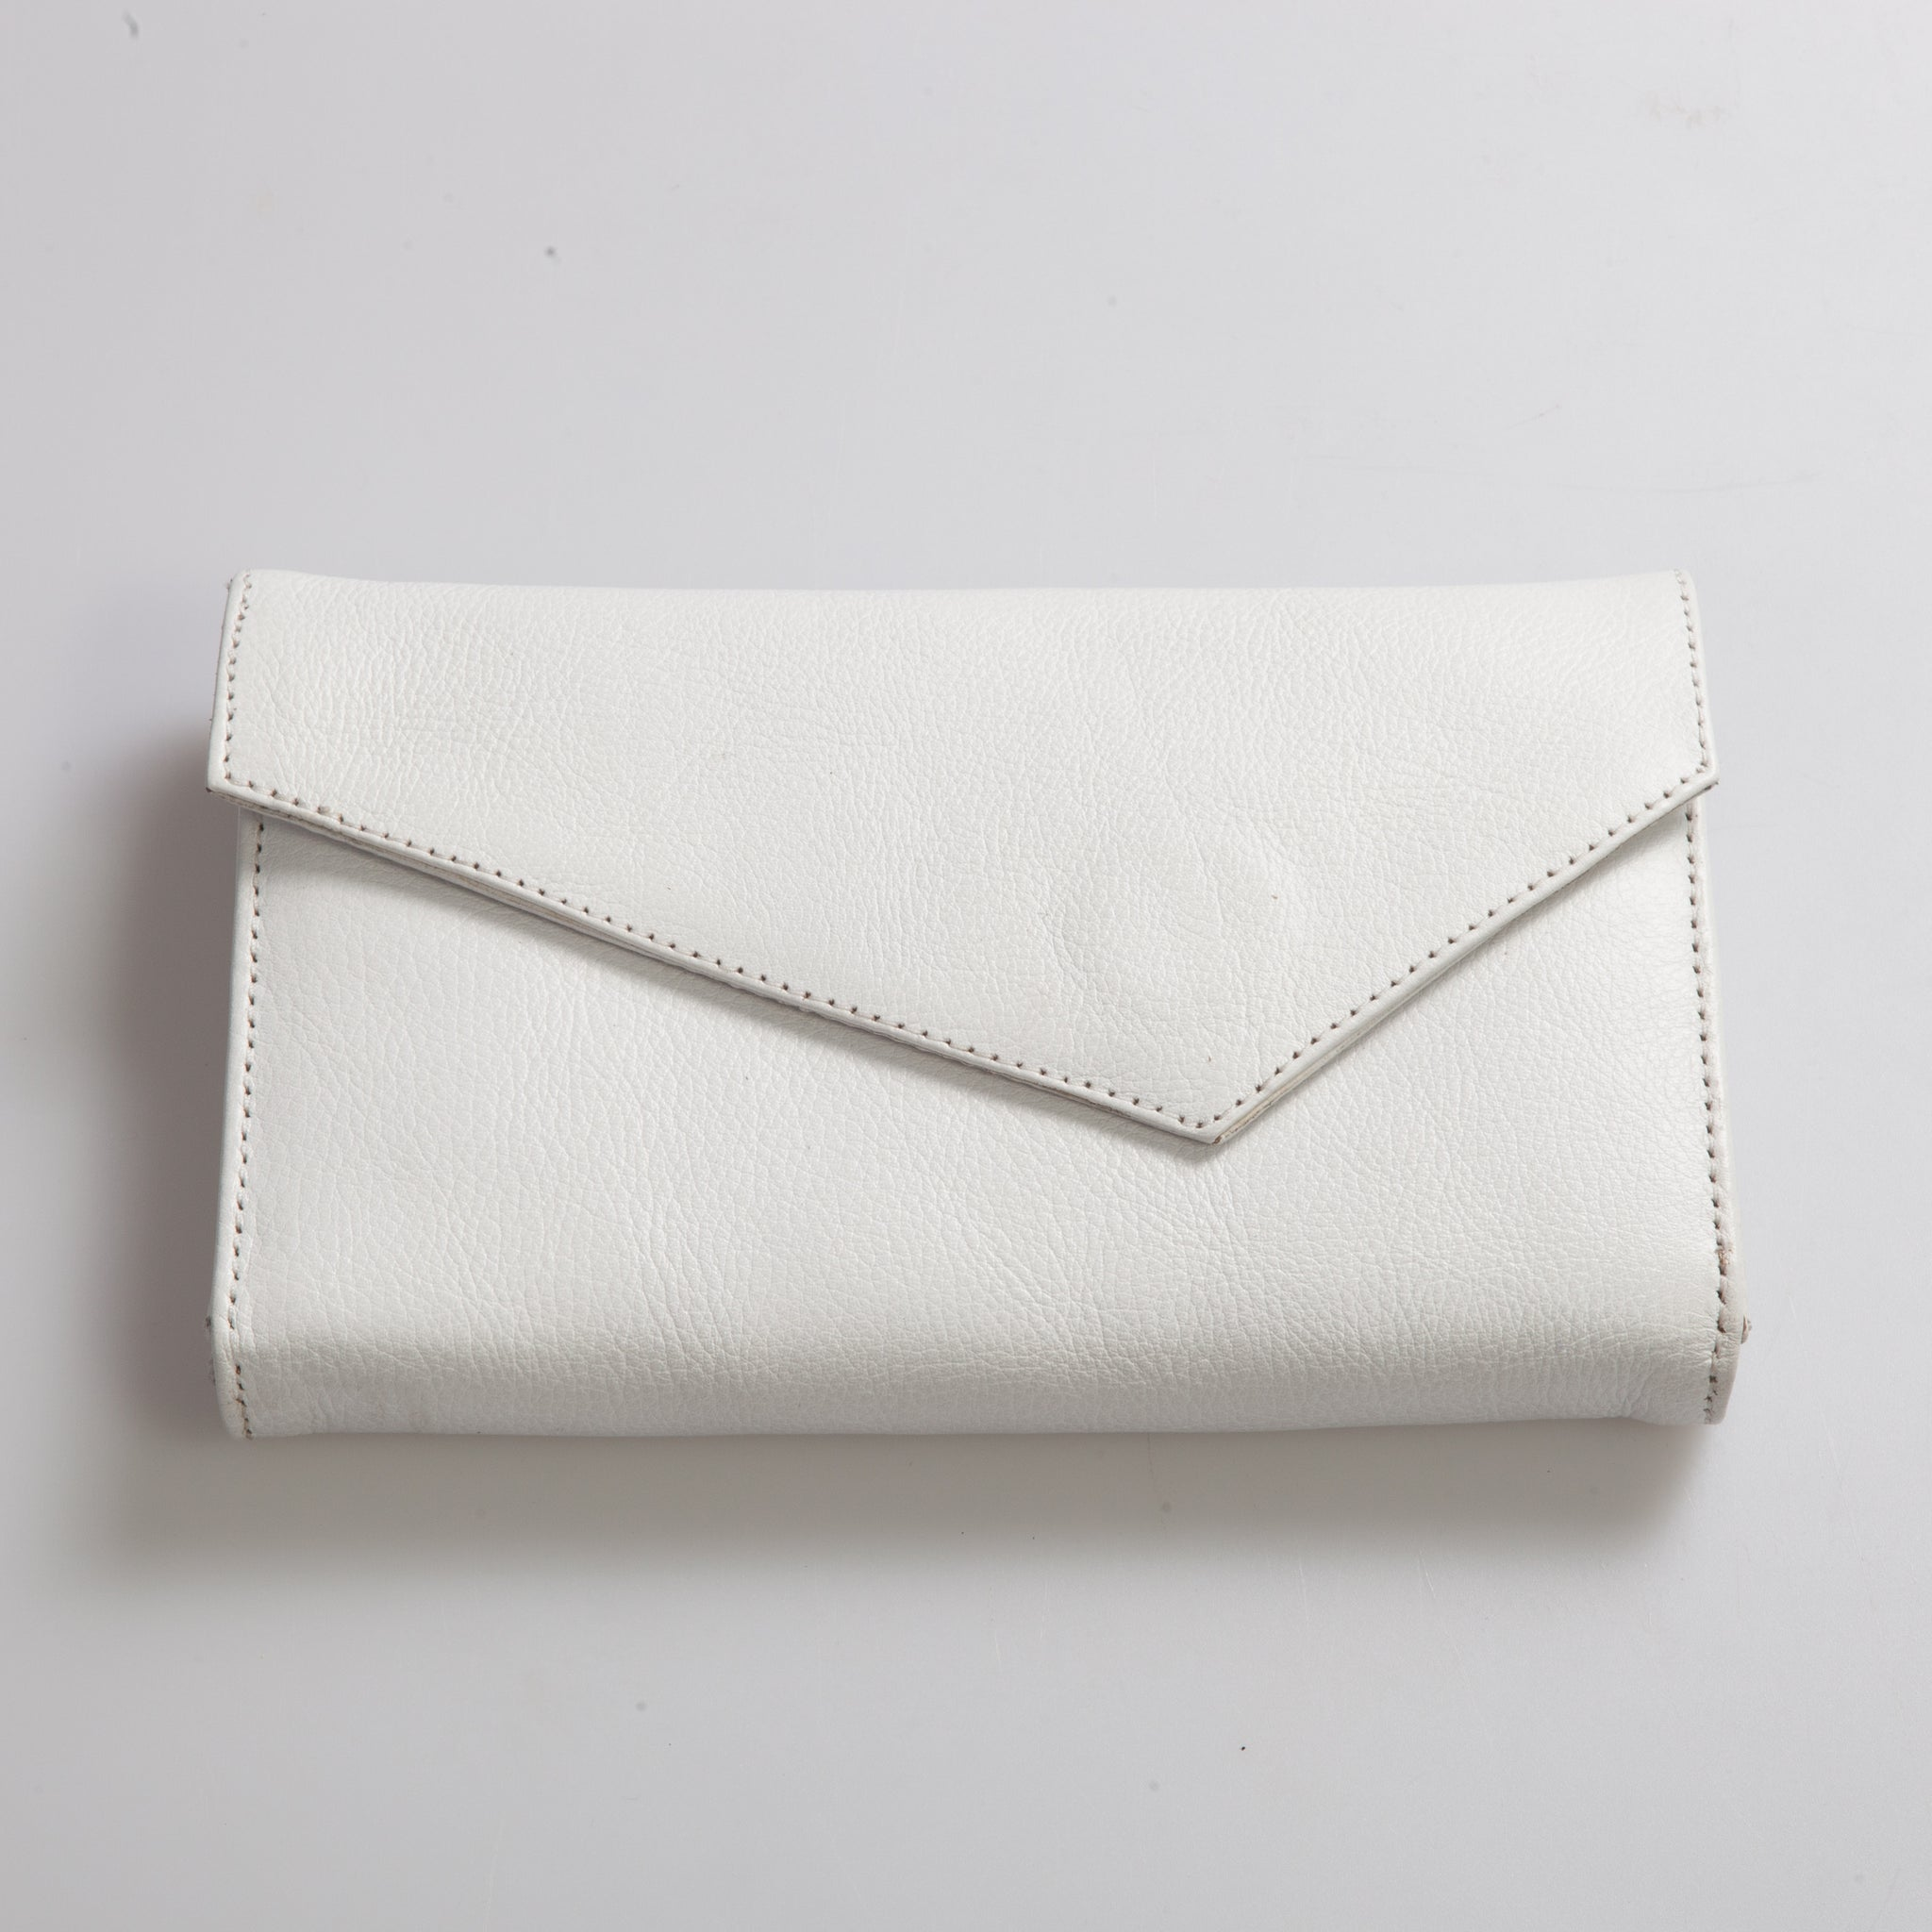 First of June, Lovina, wallet, leather, white leather